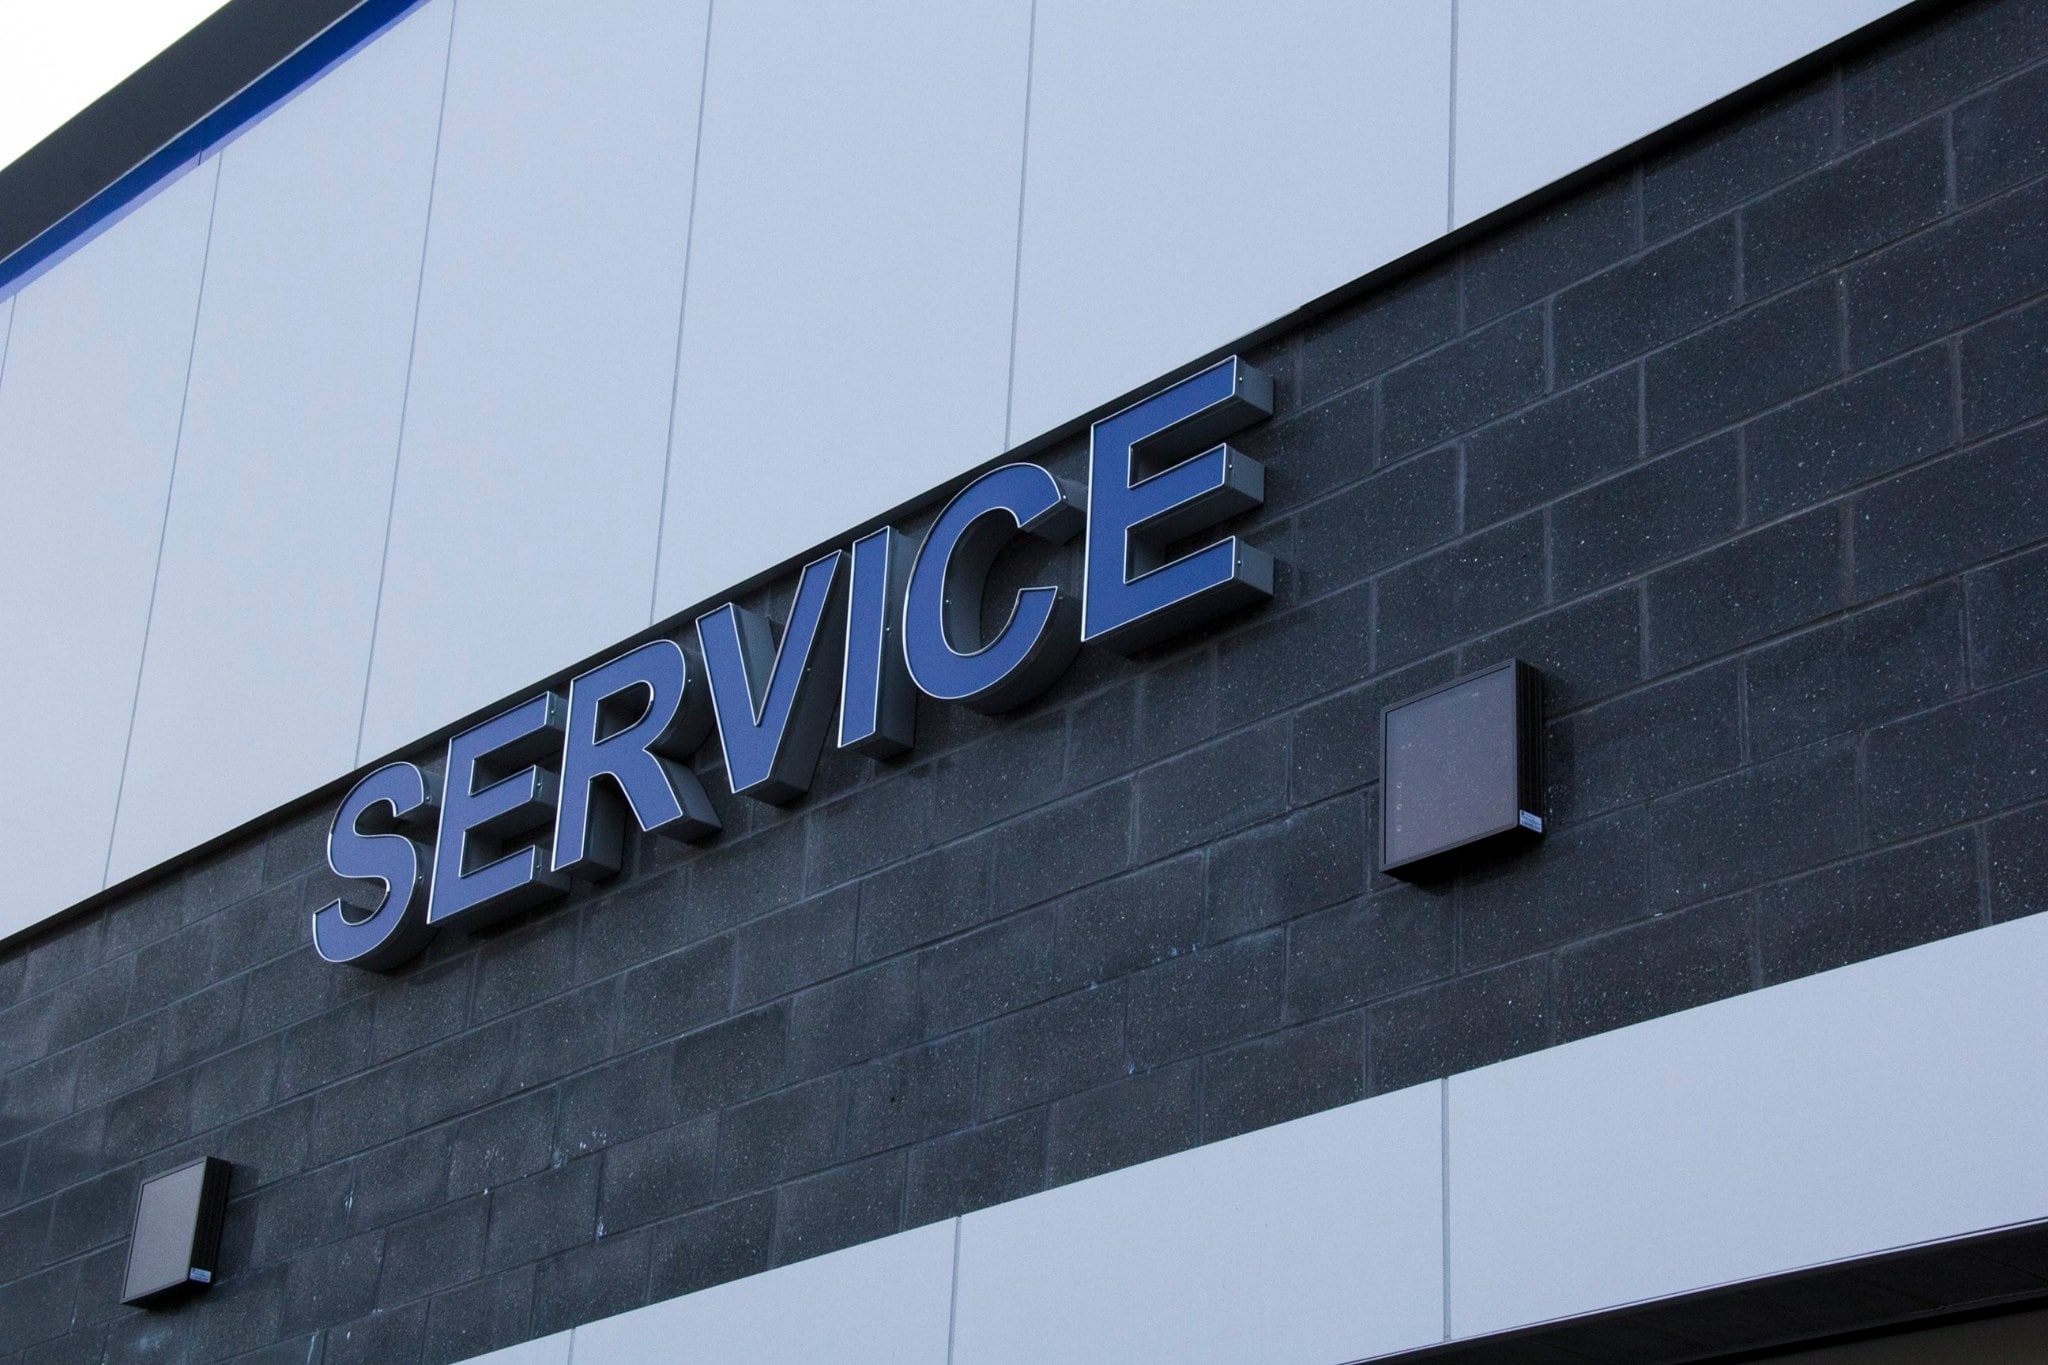 the service sign at Balise Subaru